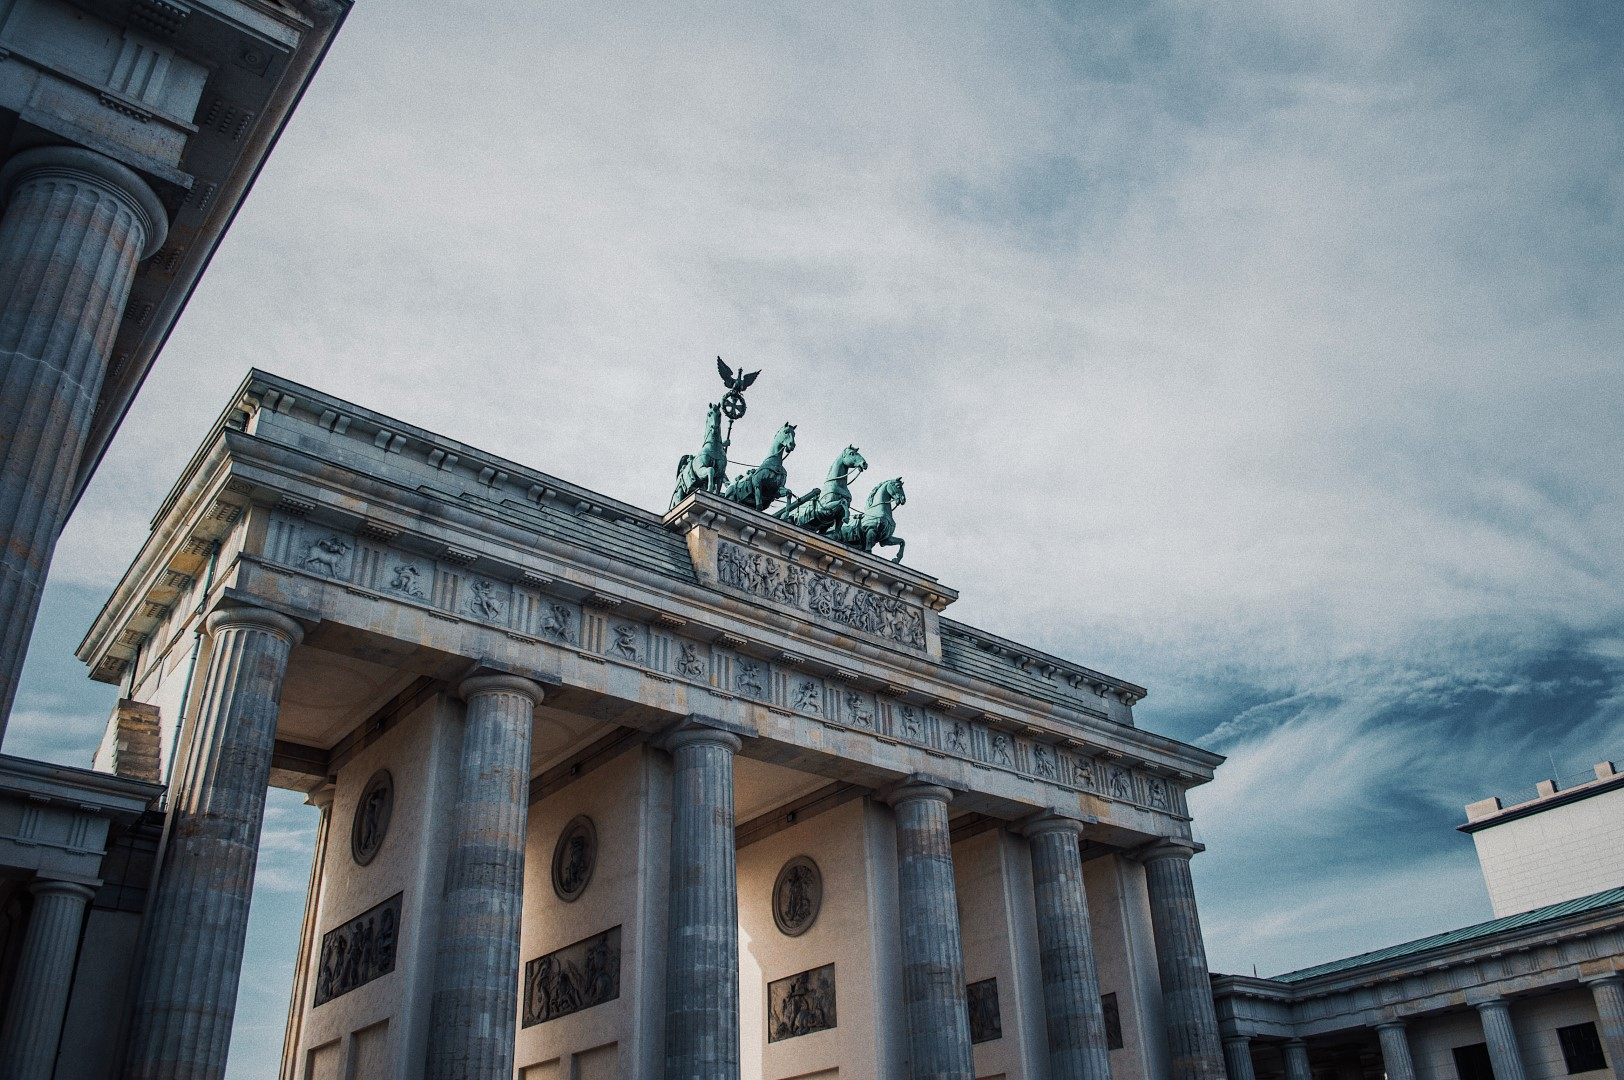 berlin free things to do: Go to the Brandenburg Gate